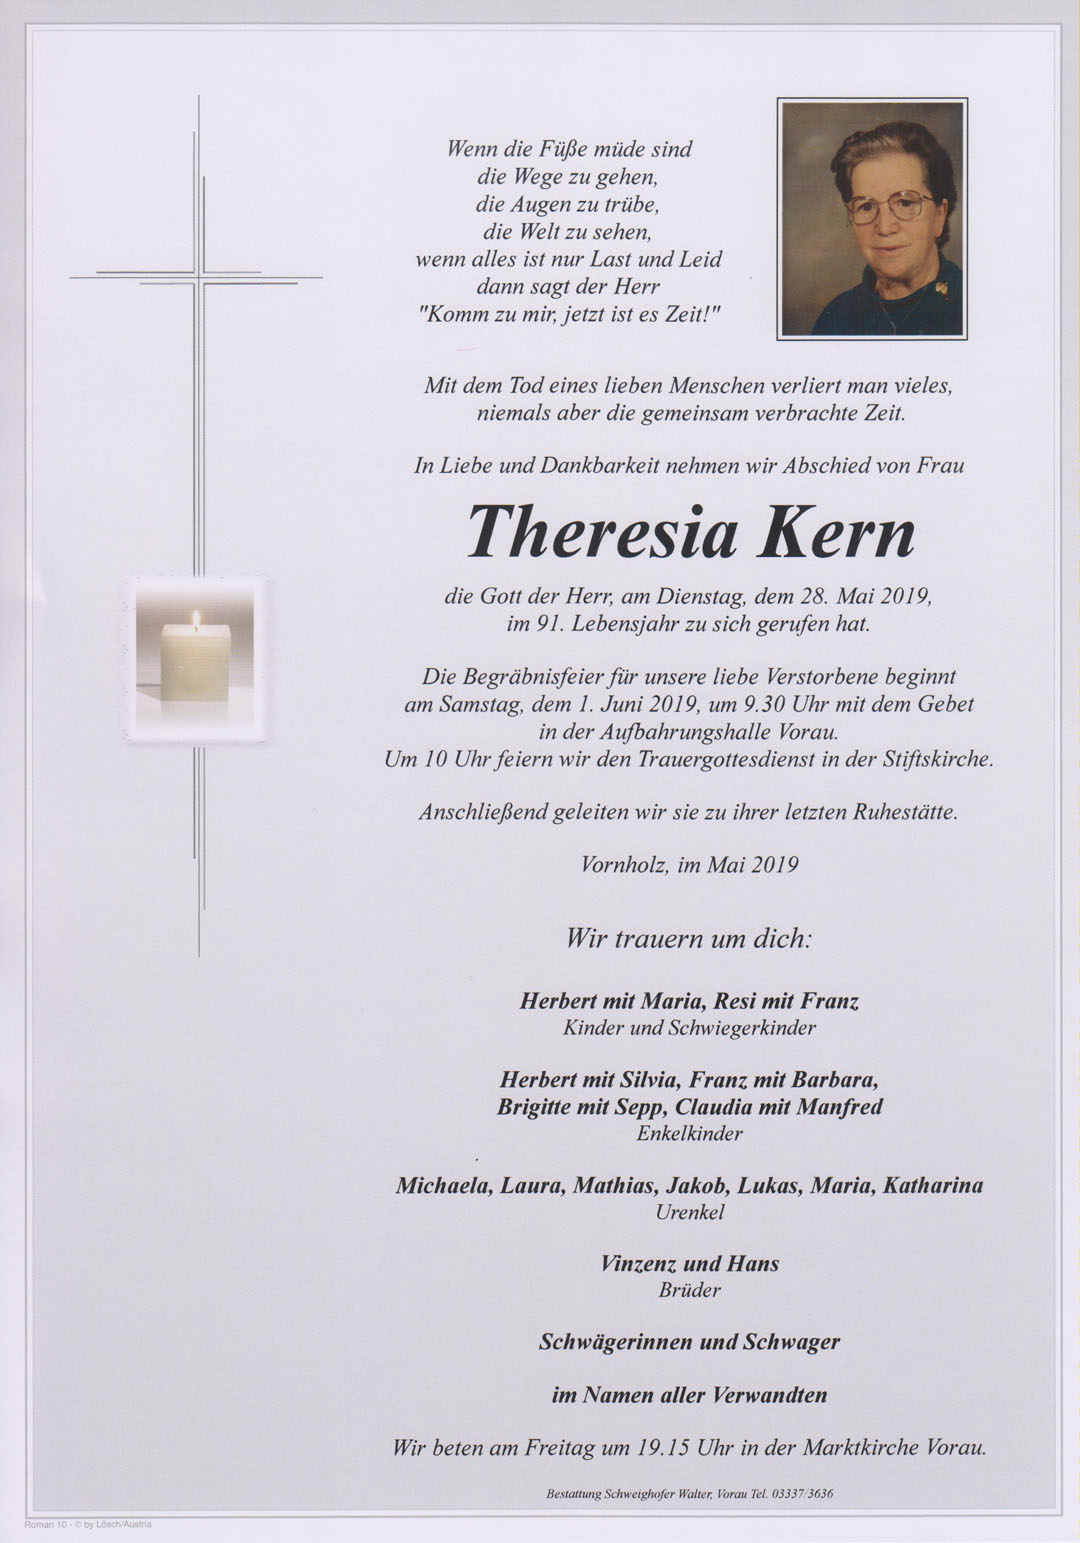 Theresia Kern